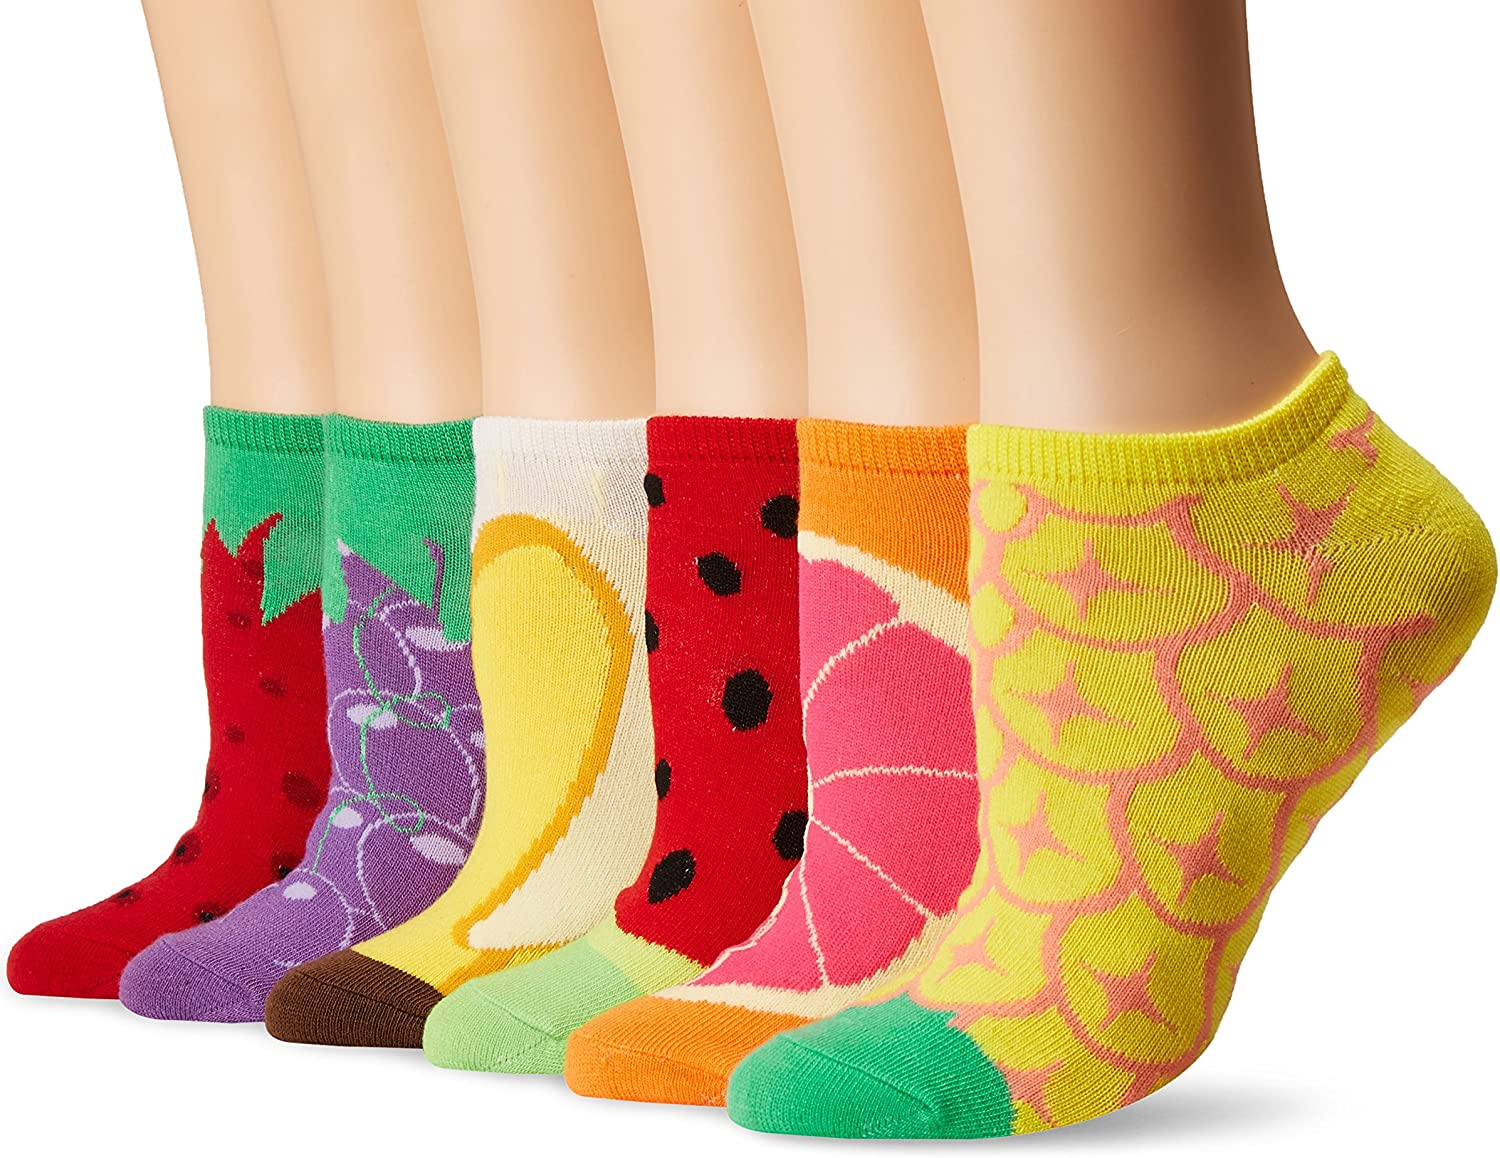 The Best Food Ankle Socks